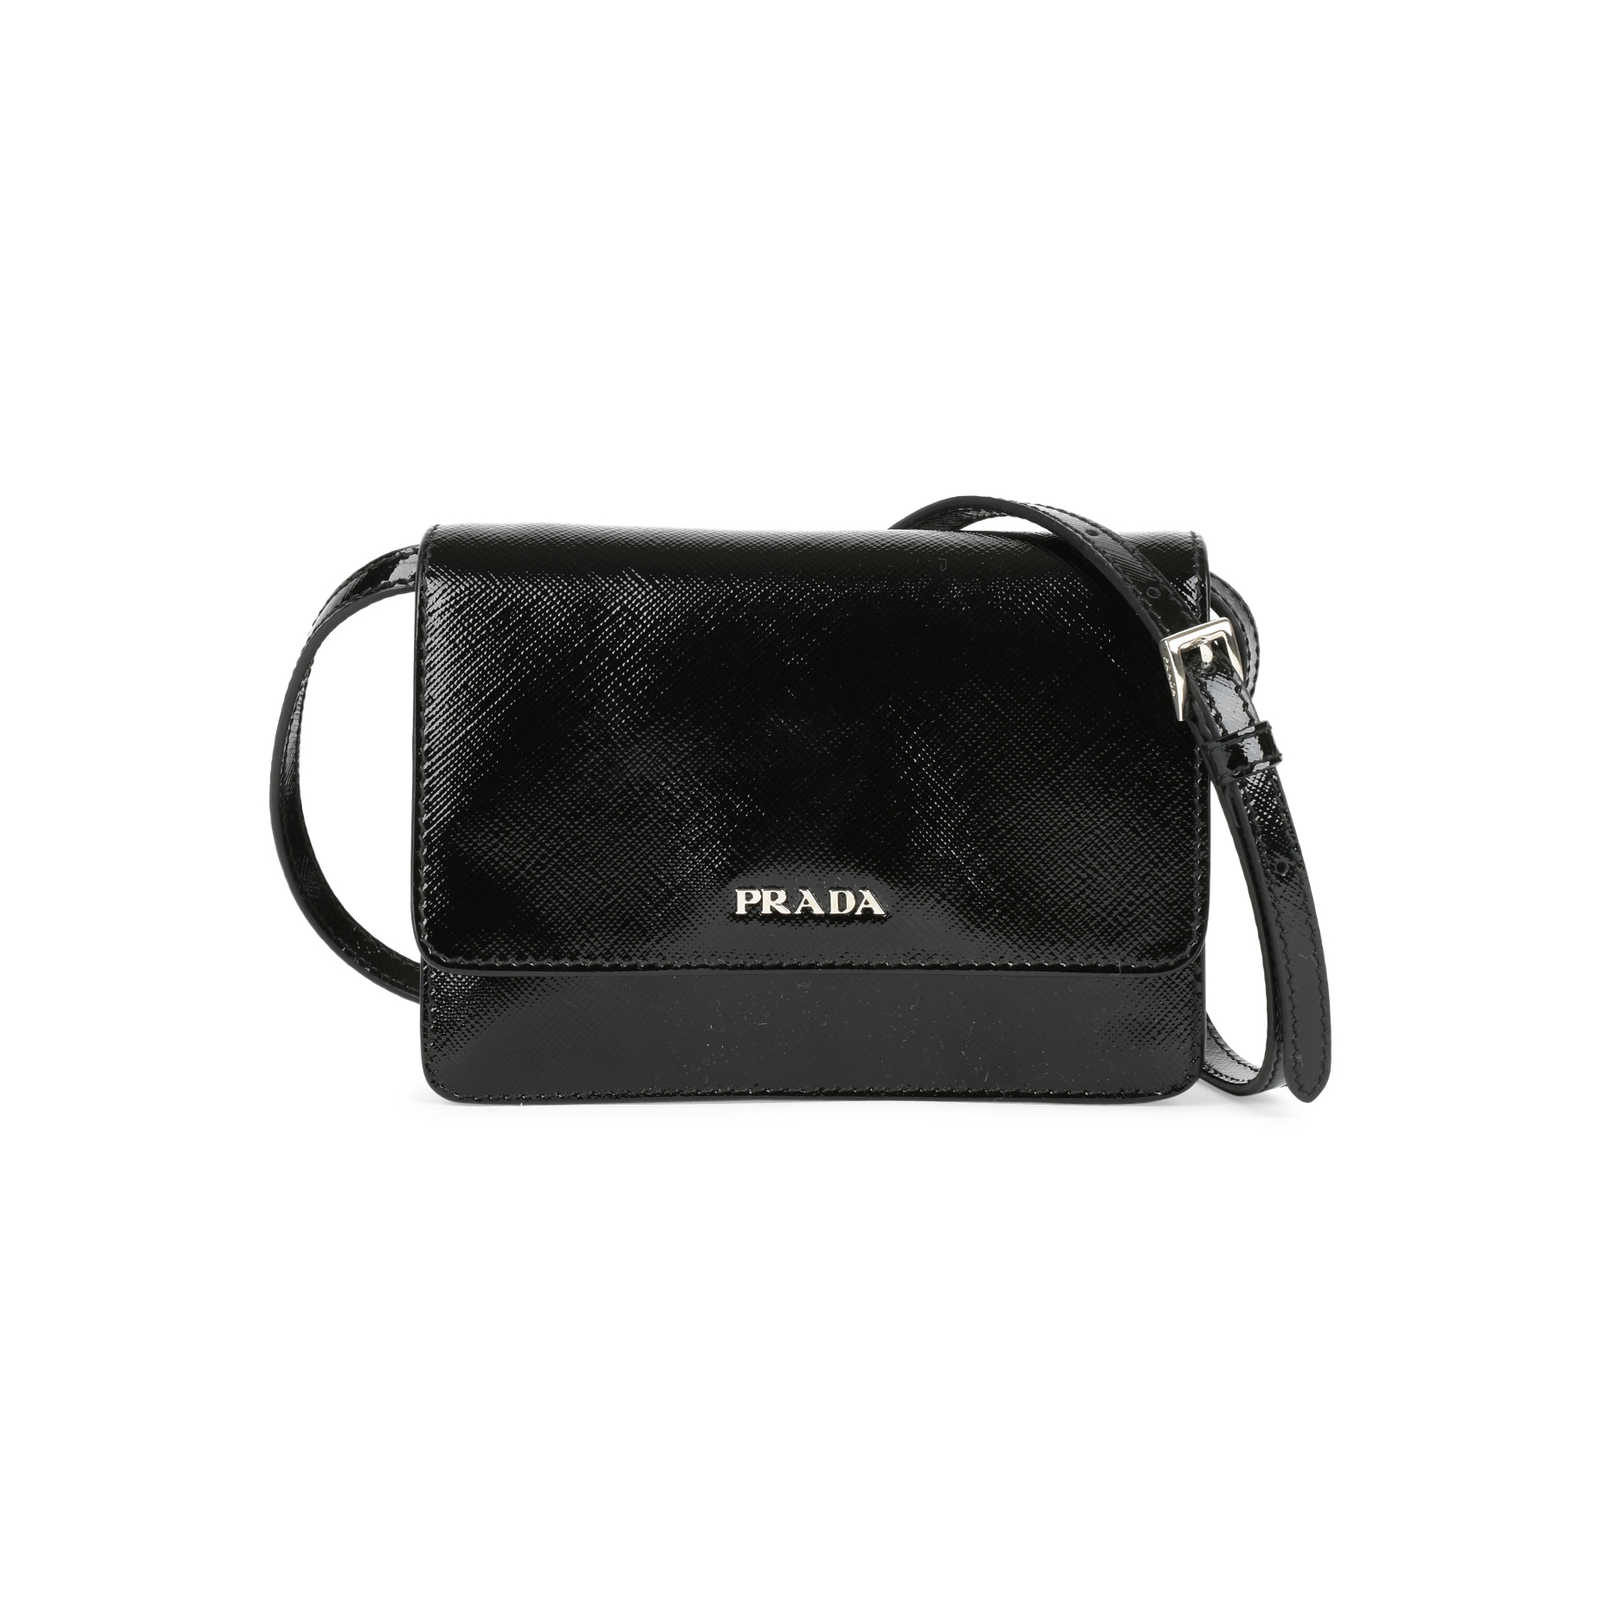 415cfd42026d ... coupon code for authentic pre owned prada saffiano lux mini crossbody  bag pss 446 00002 43429